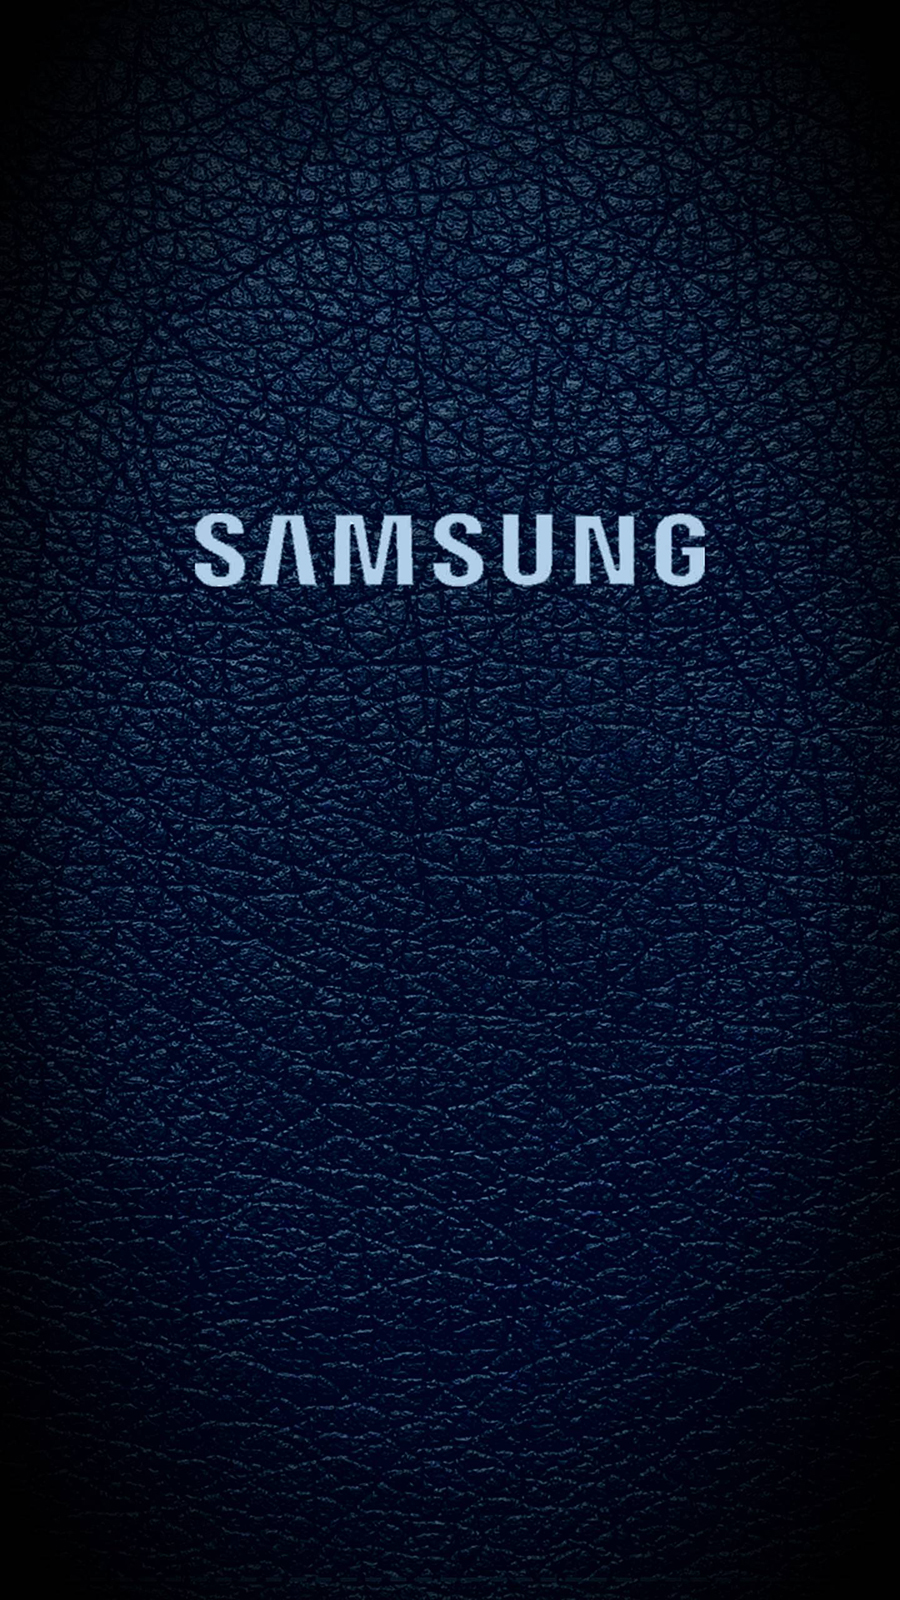 Samsung Wallpapers Free Download For Your Device